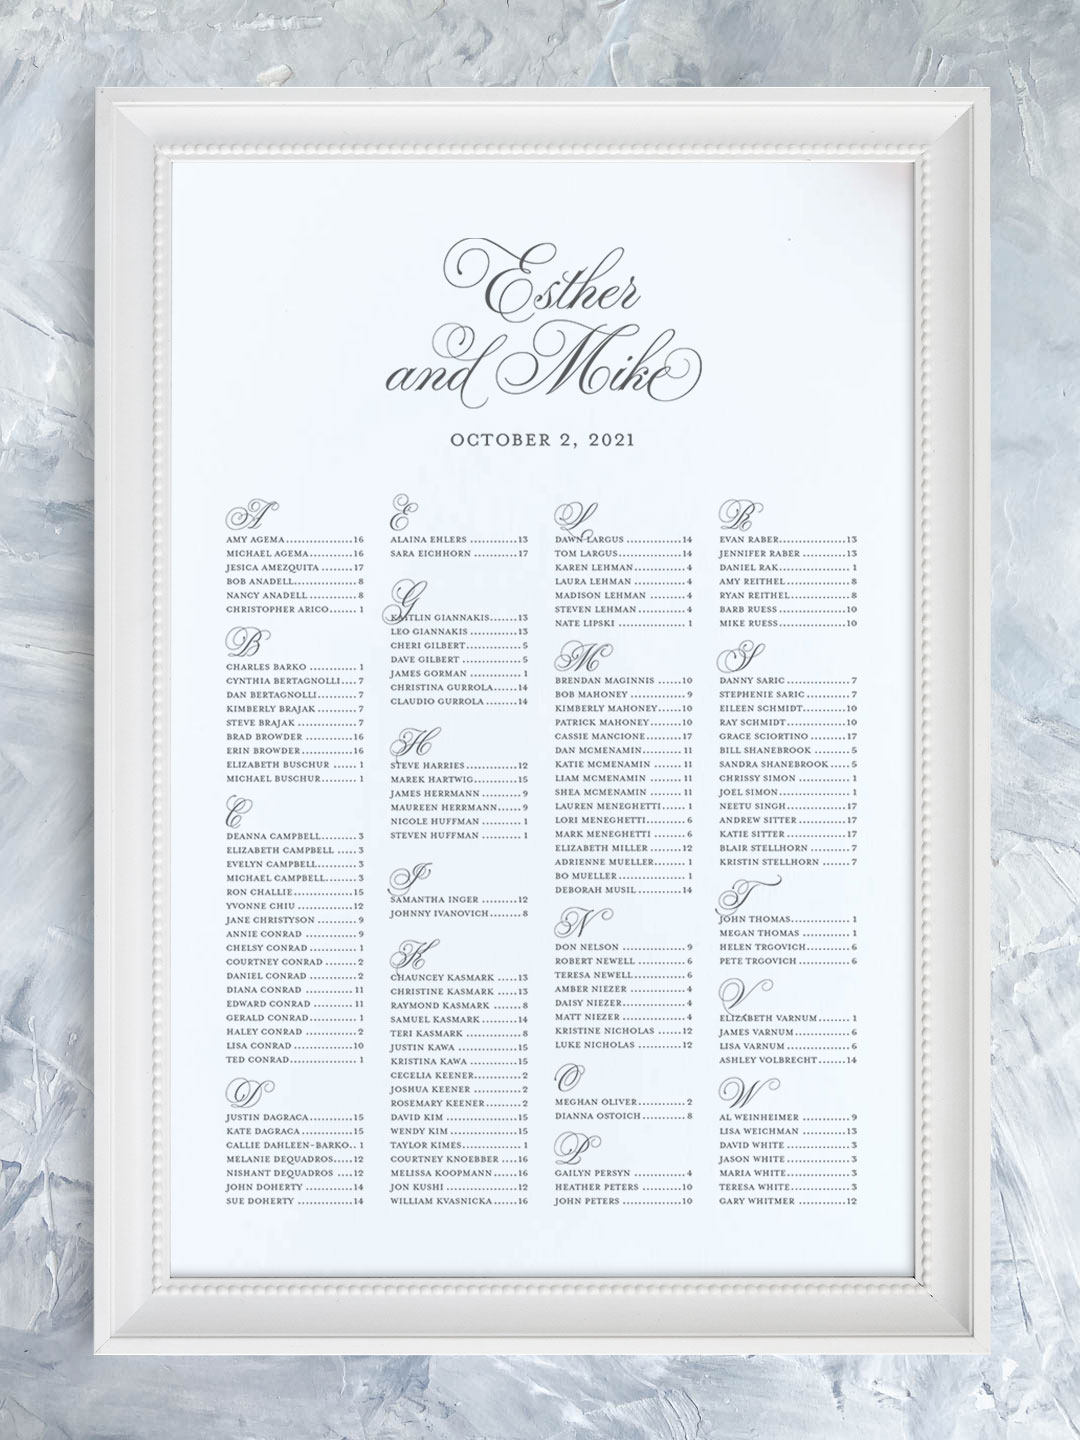 Wedding seating chart with flourished script font organized alphabetically.